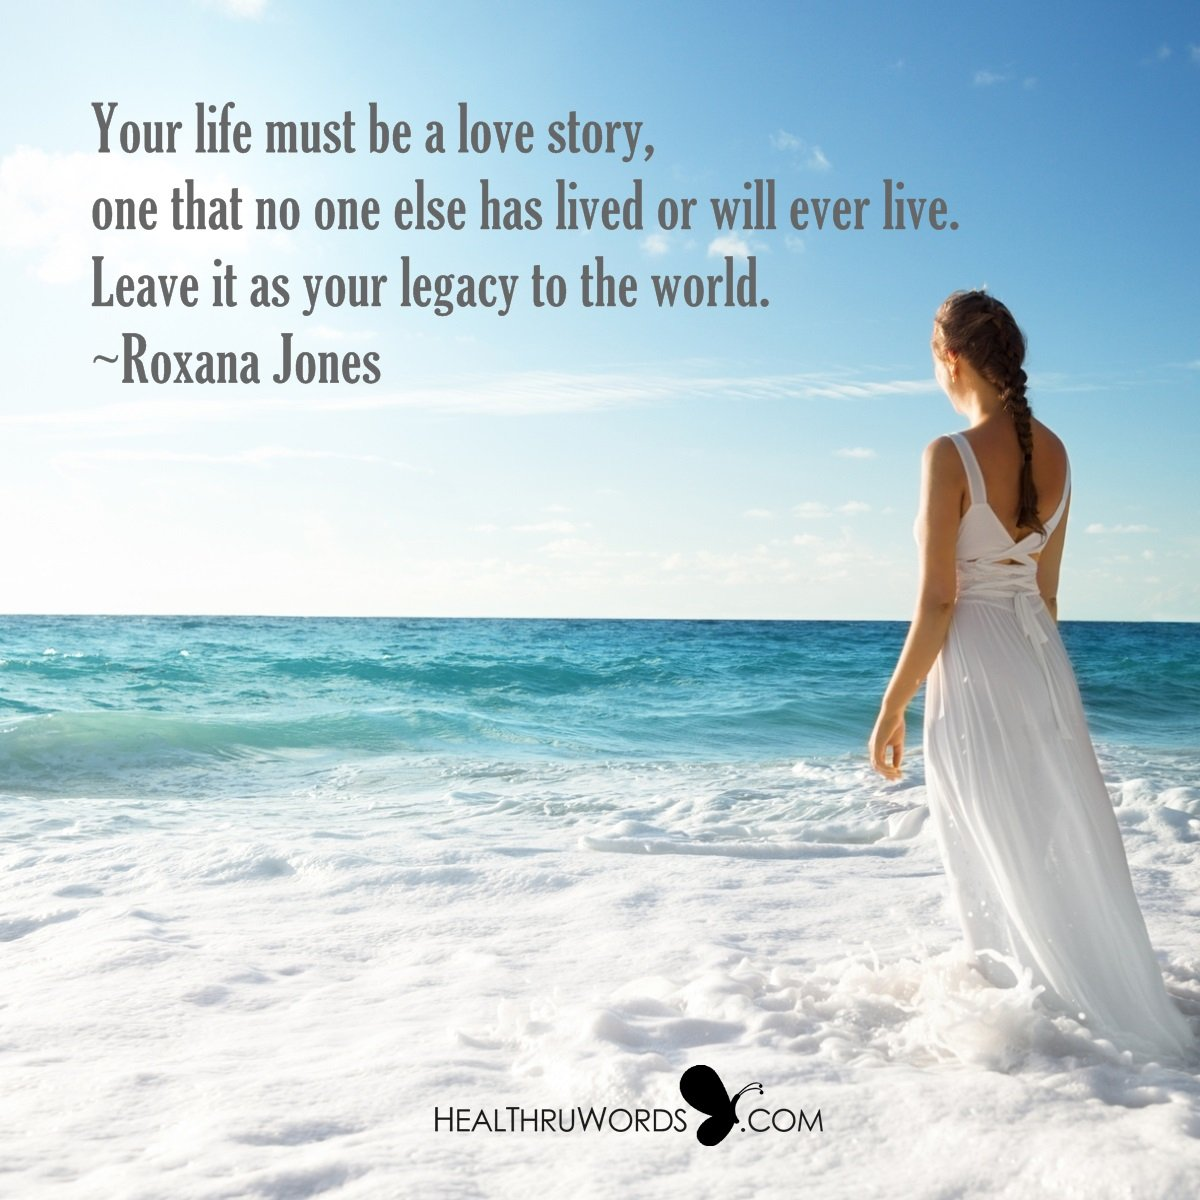 Inspirational Image: A Love Story Under Your Name